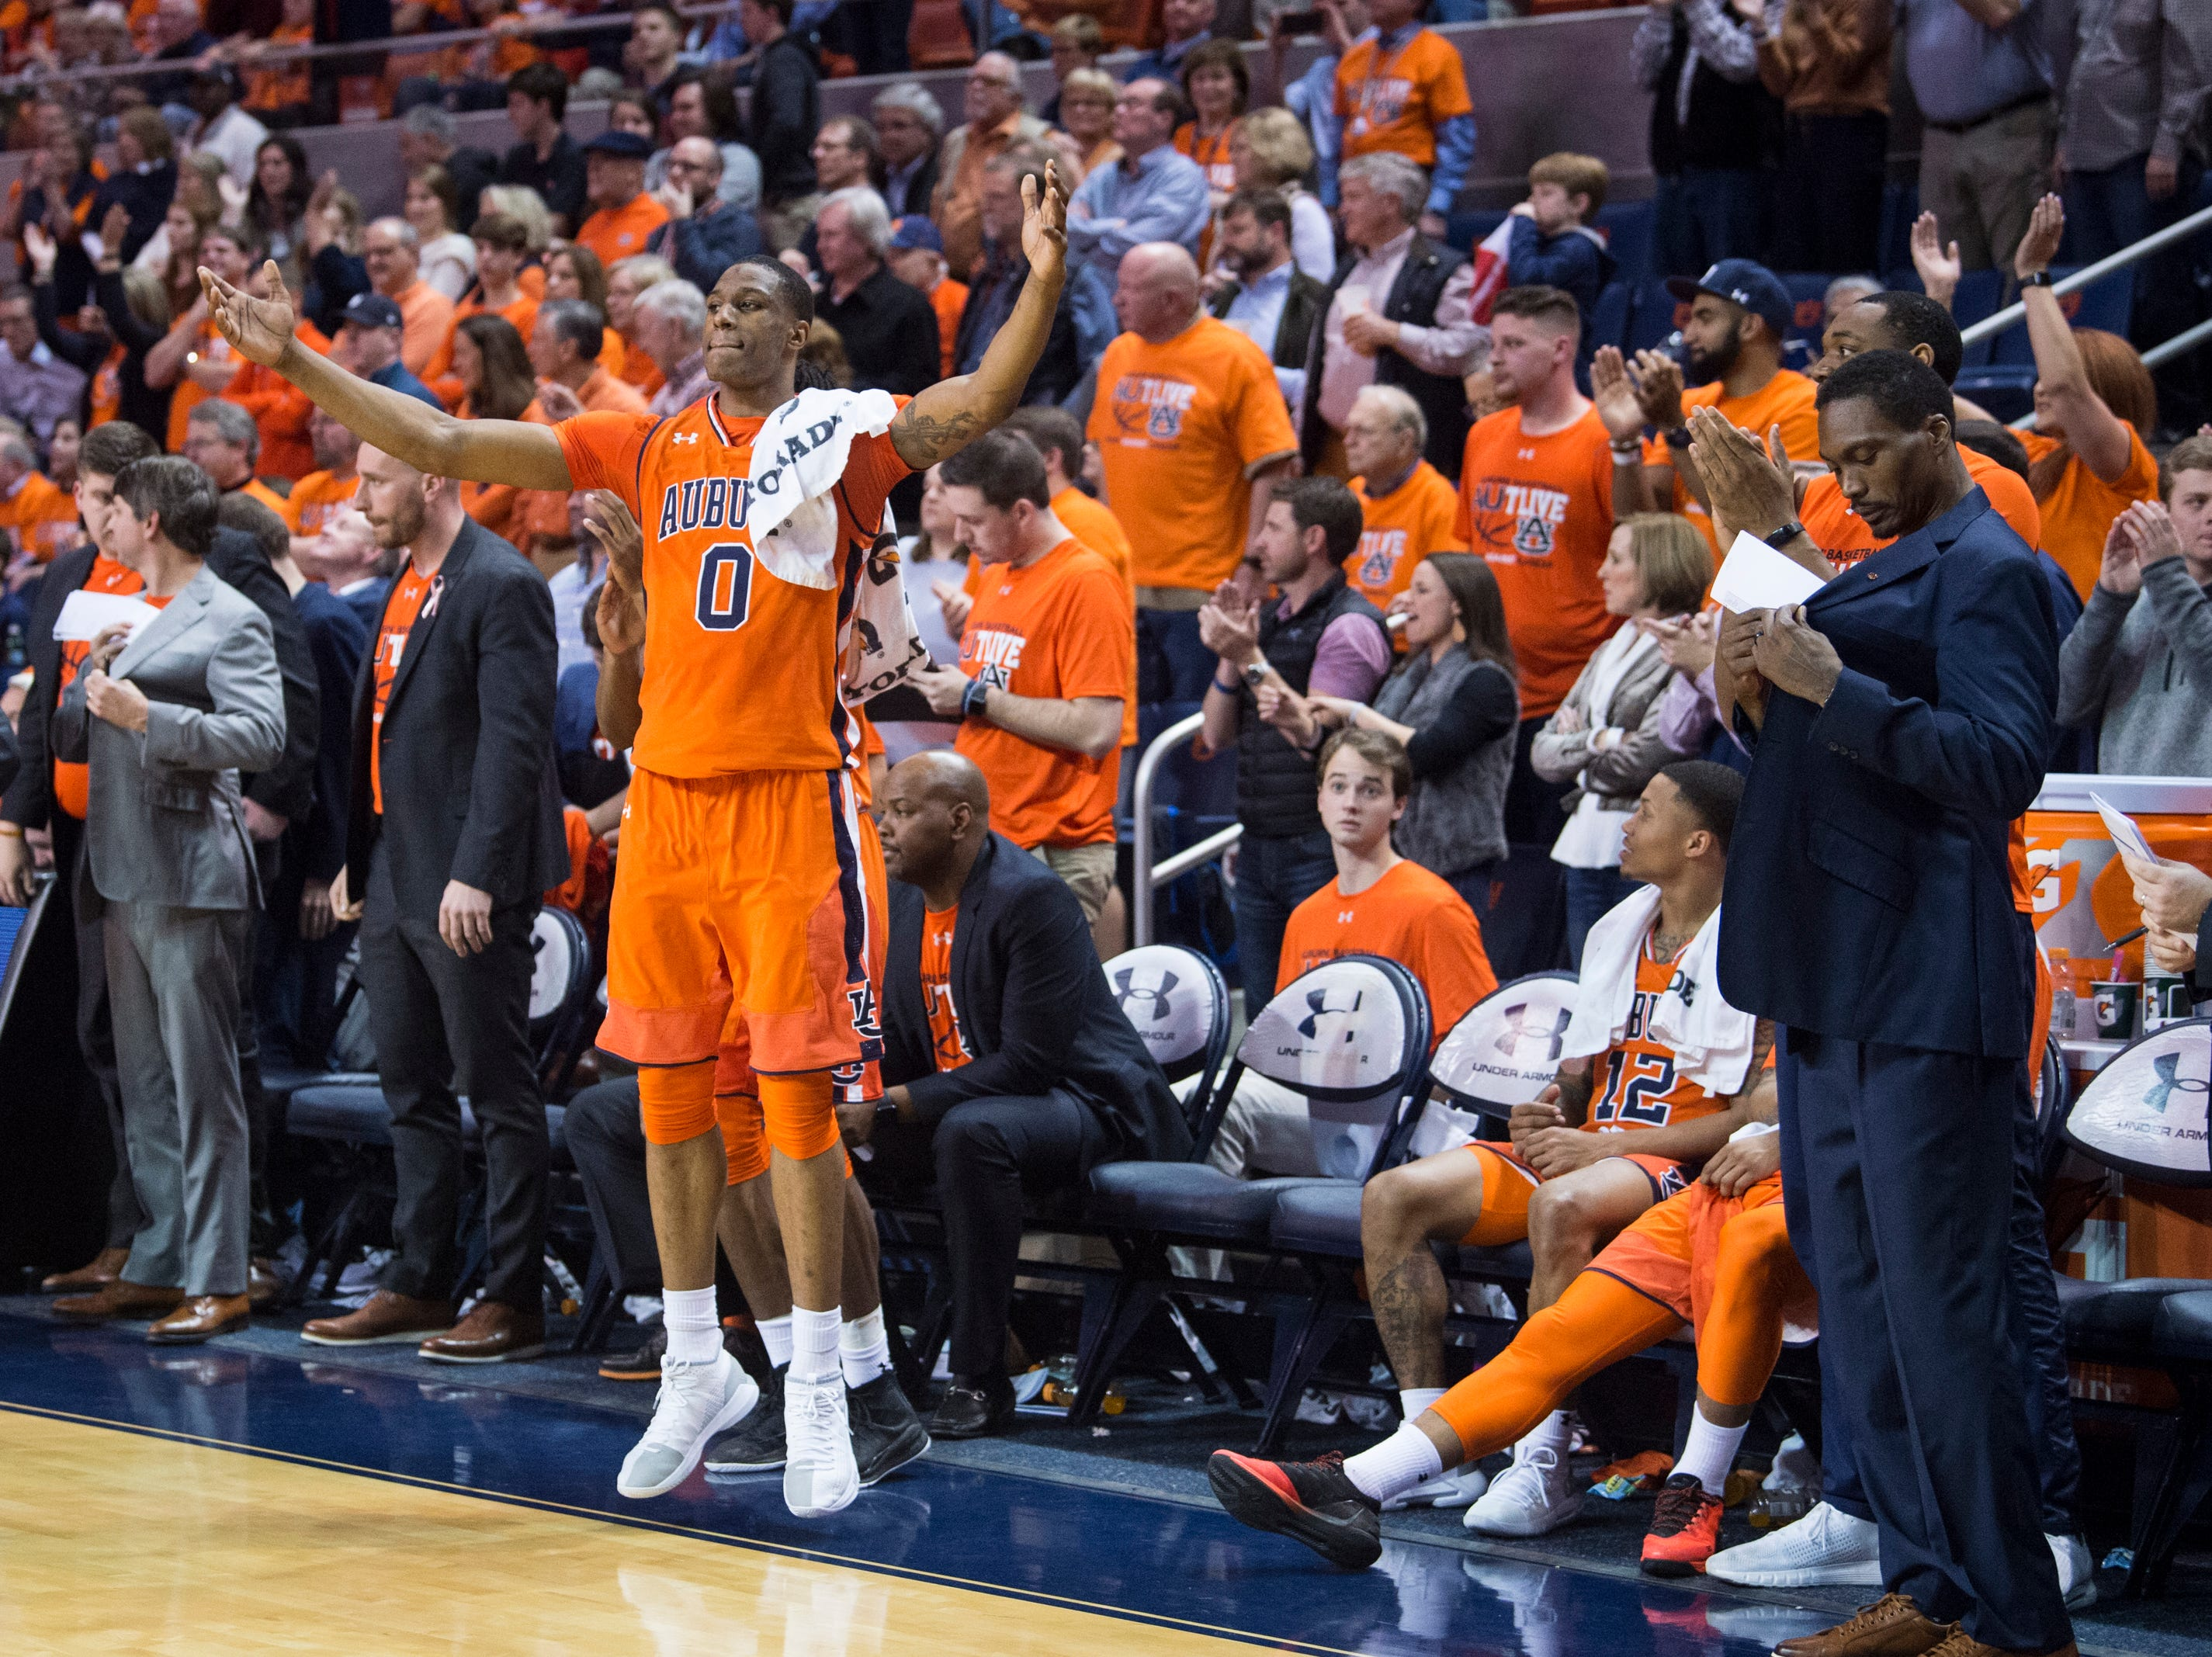 Auburn forward Horace Spencer (0) celebrates in the final seconds of the game at Auburn Arena in Auburn, Ala., on Saturday, Feb. 2, 2019. Auburn defeated Alabama 84-63.